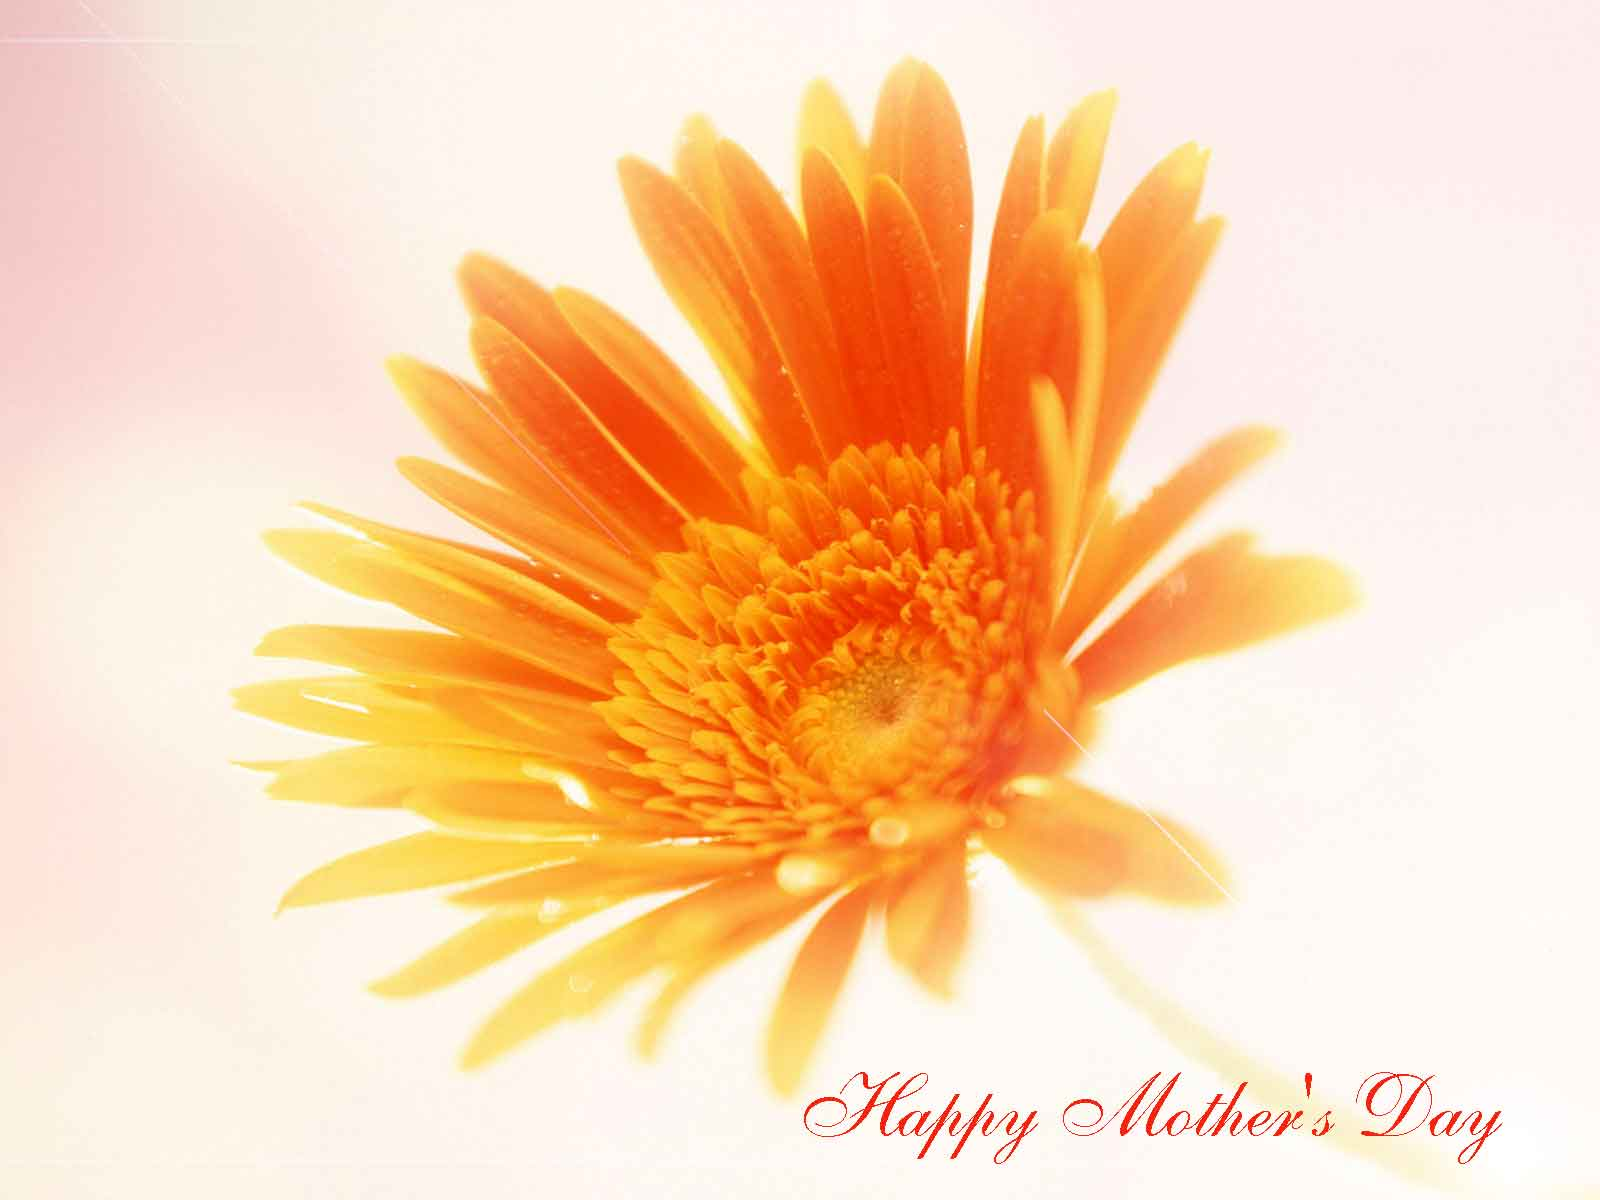 Happy Mothers Day Cool Wallpapers Cool Christian Wallpapers 1600x1200